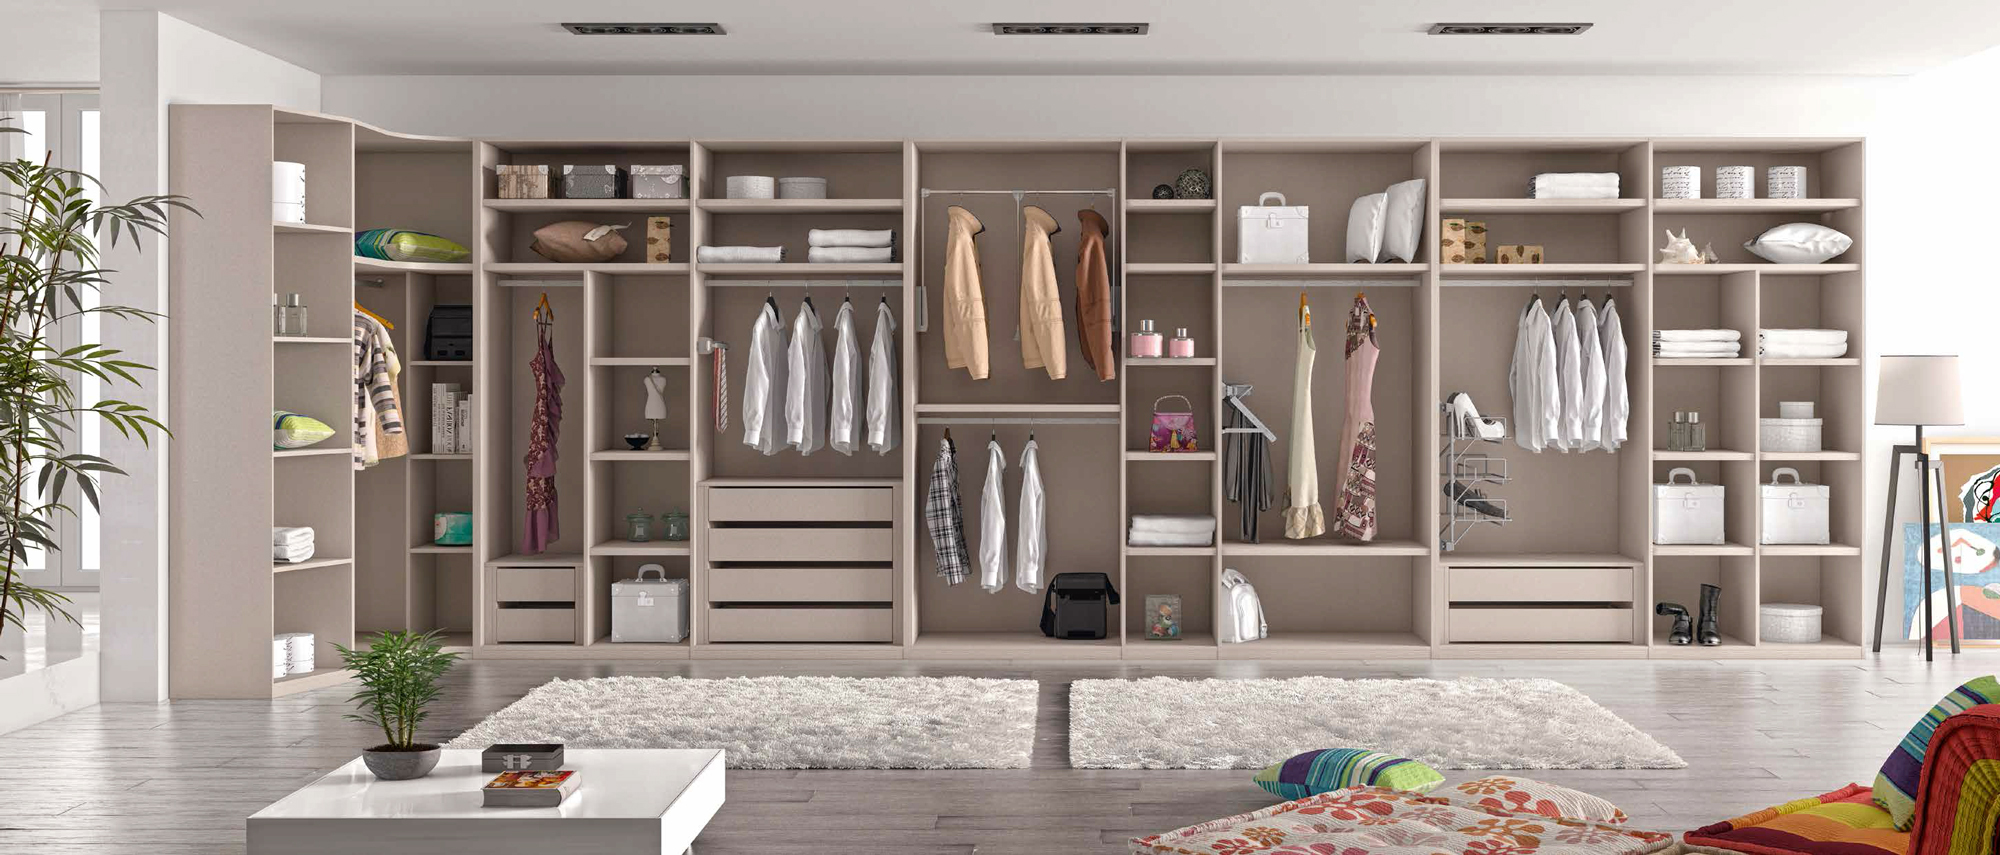 guide pratique pour optimiser le rangement chambre enfant. Black Bedroom Furniture Sets. Home Design Ideas